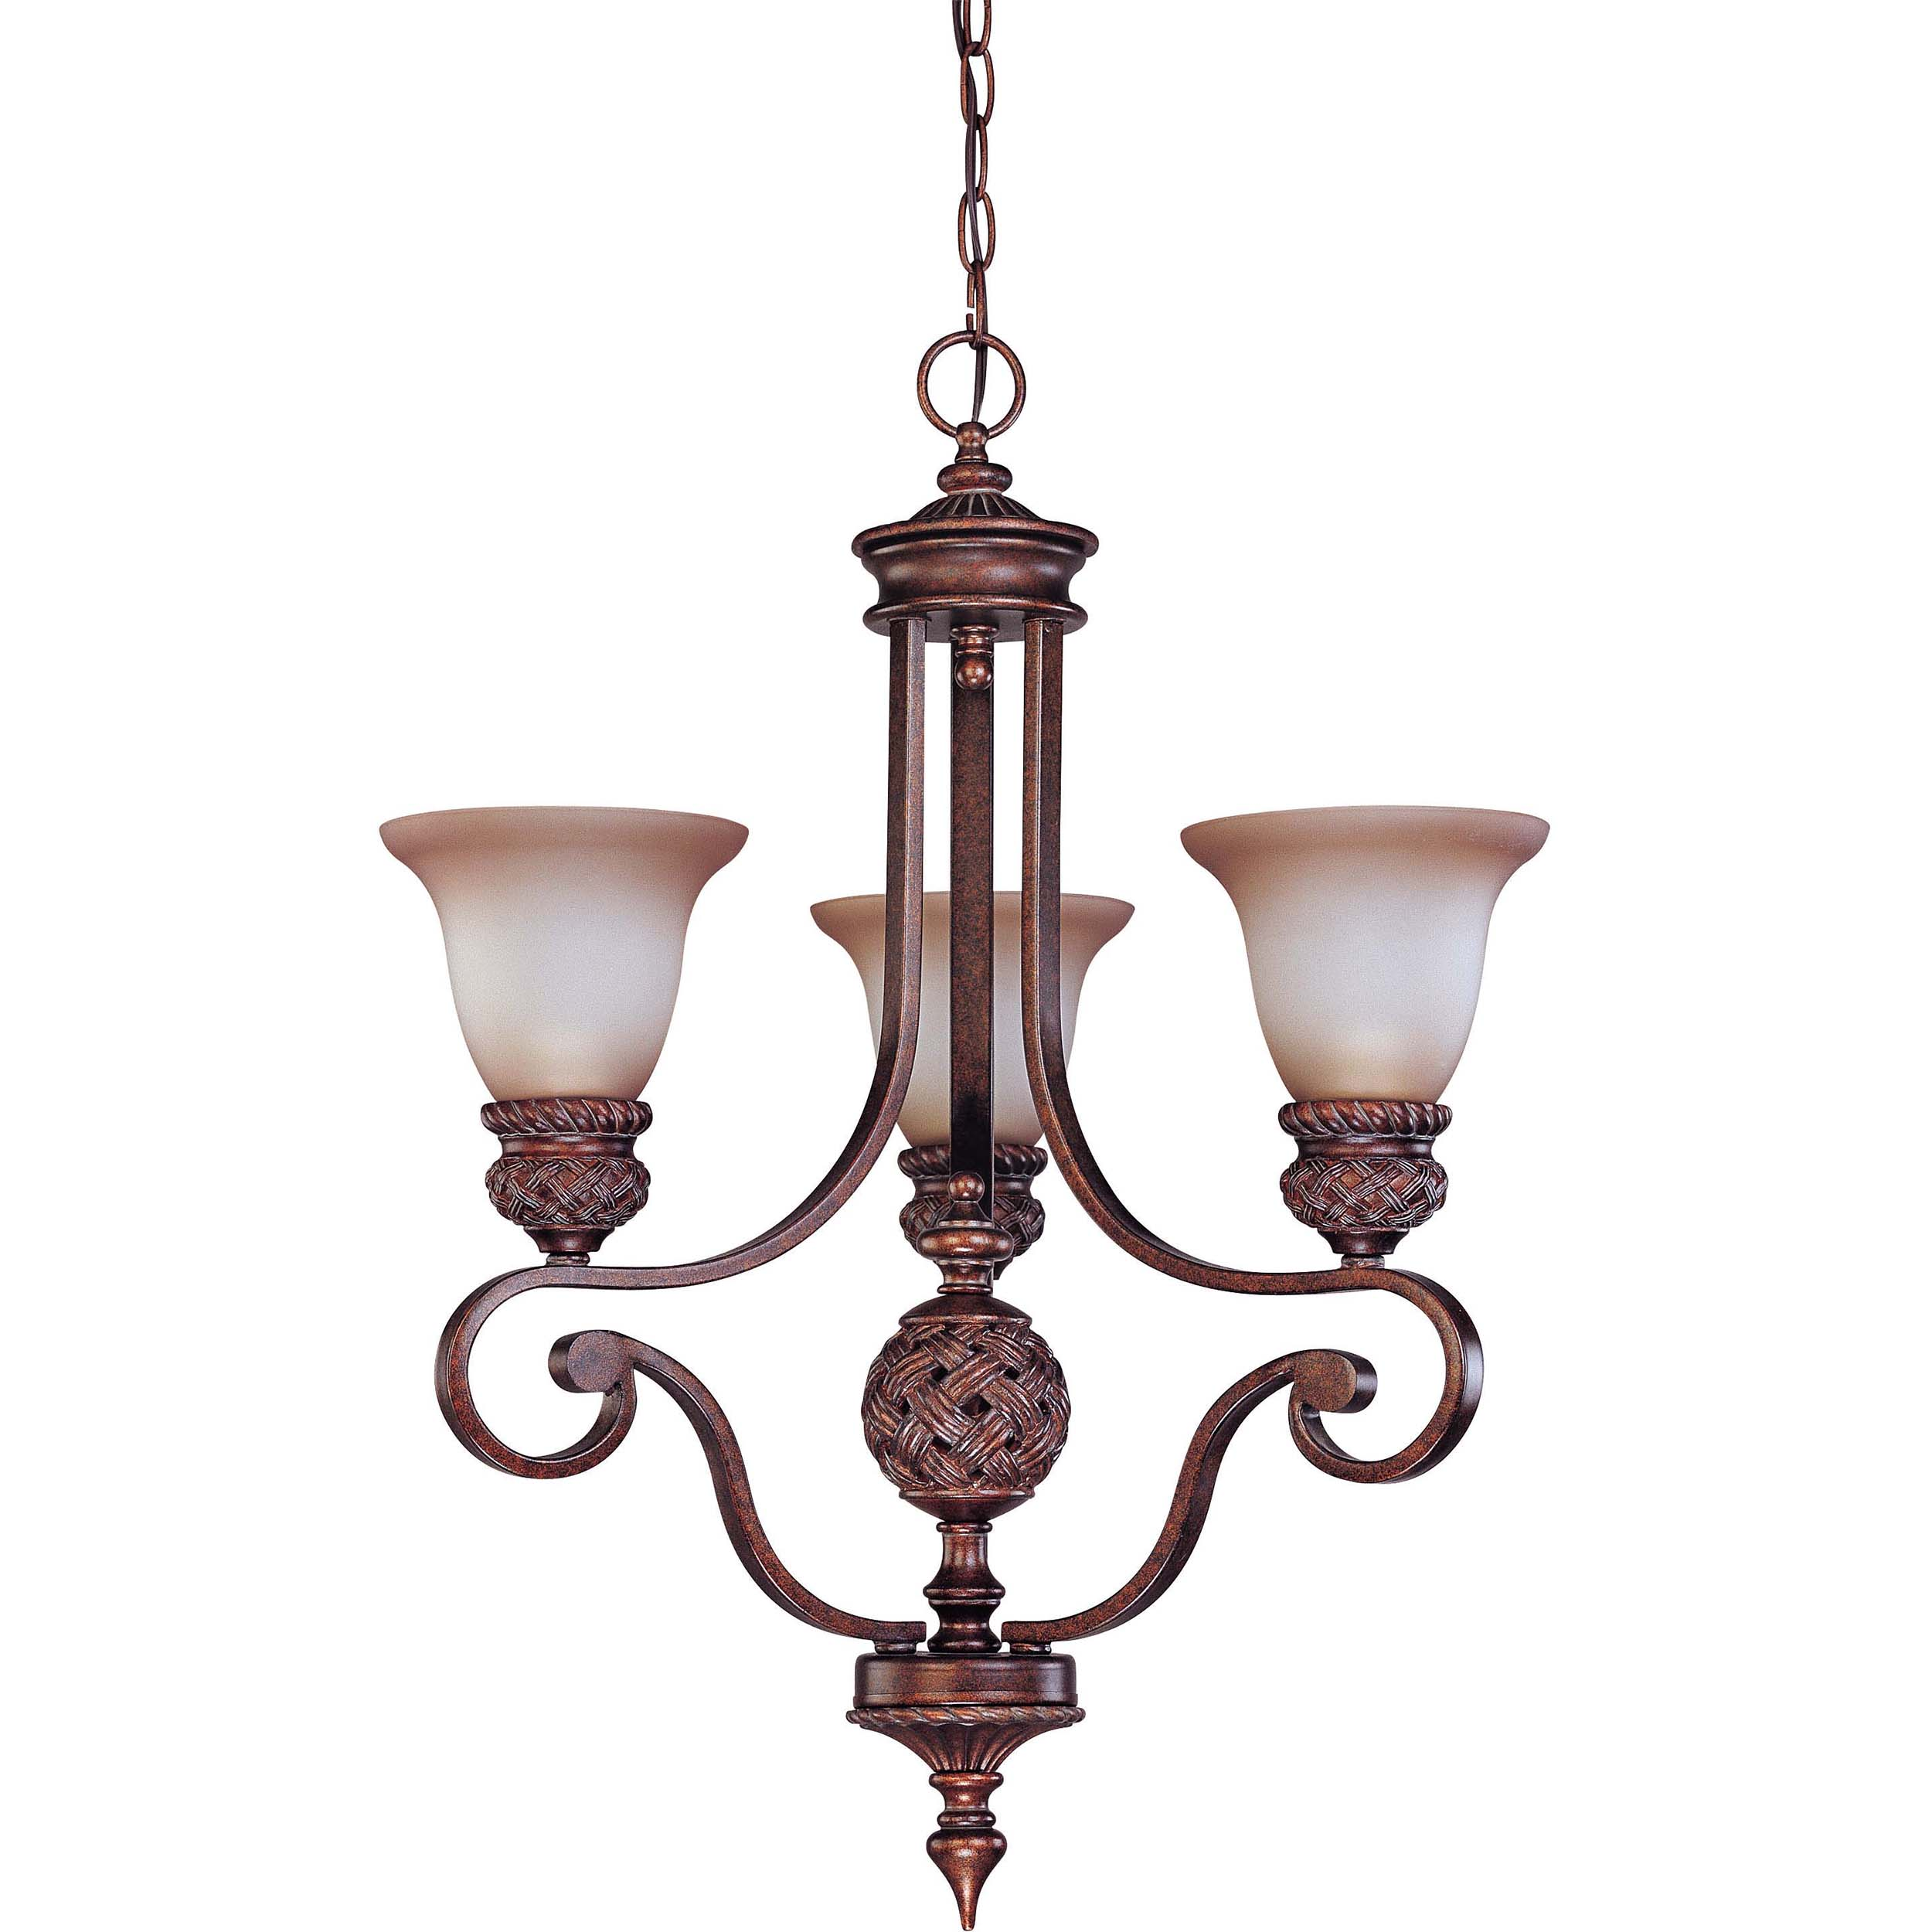 Wesley 3-light Arm Up Dark Plum Bronze With Amber Bisque Glass Chandelier - Thumbnail 0